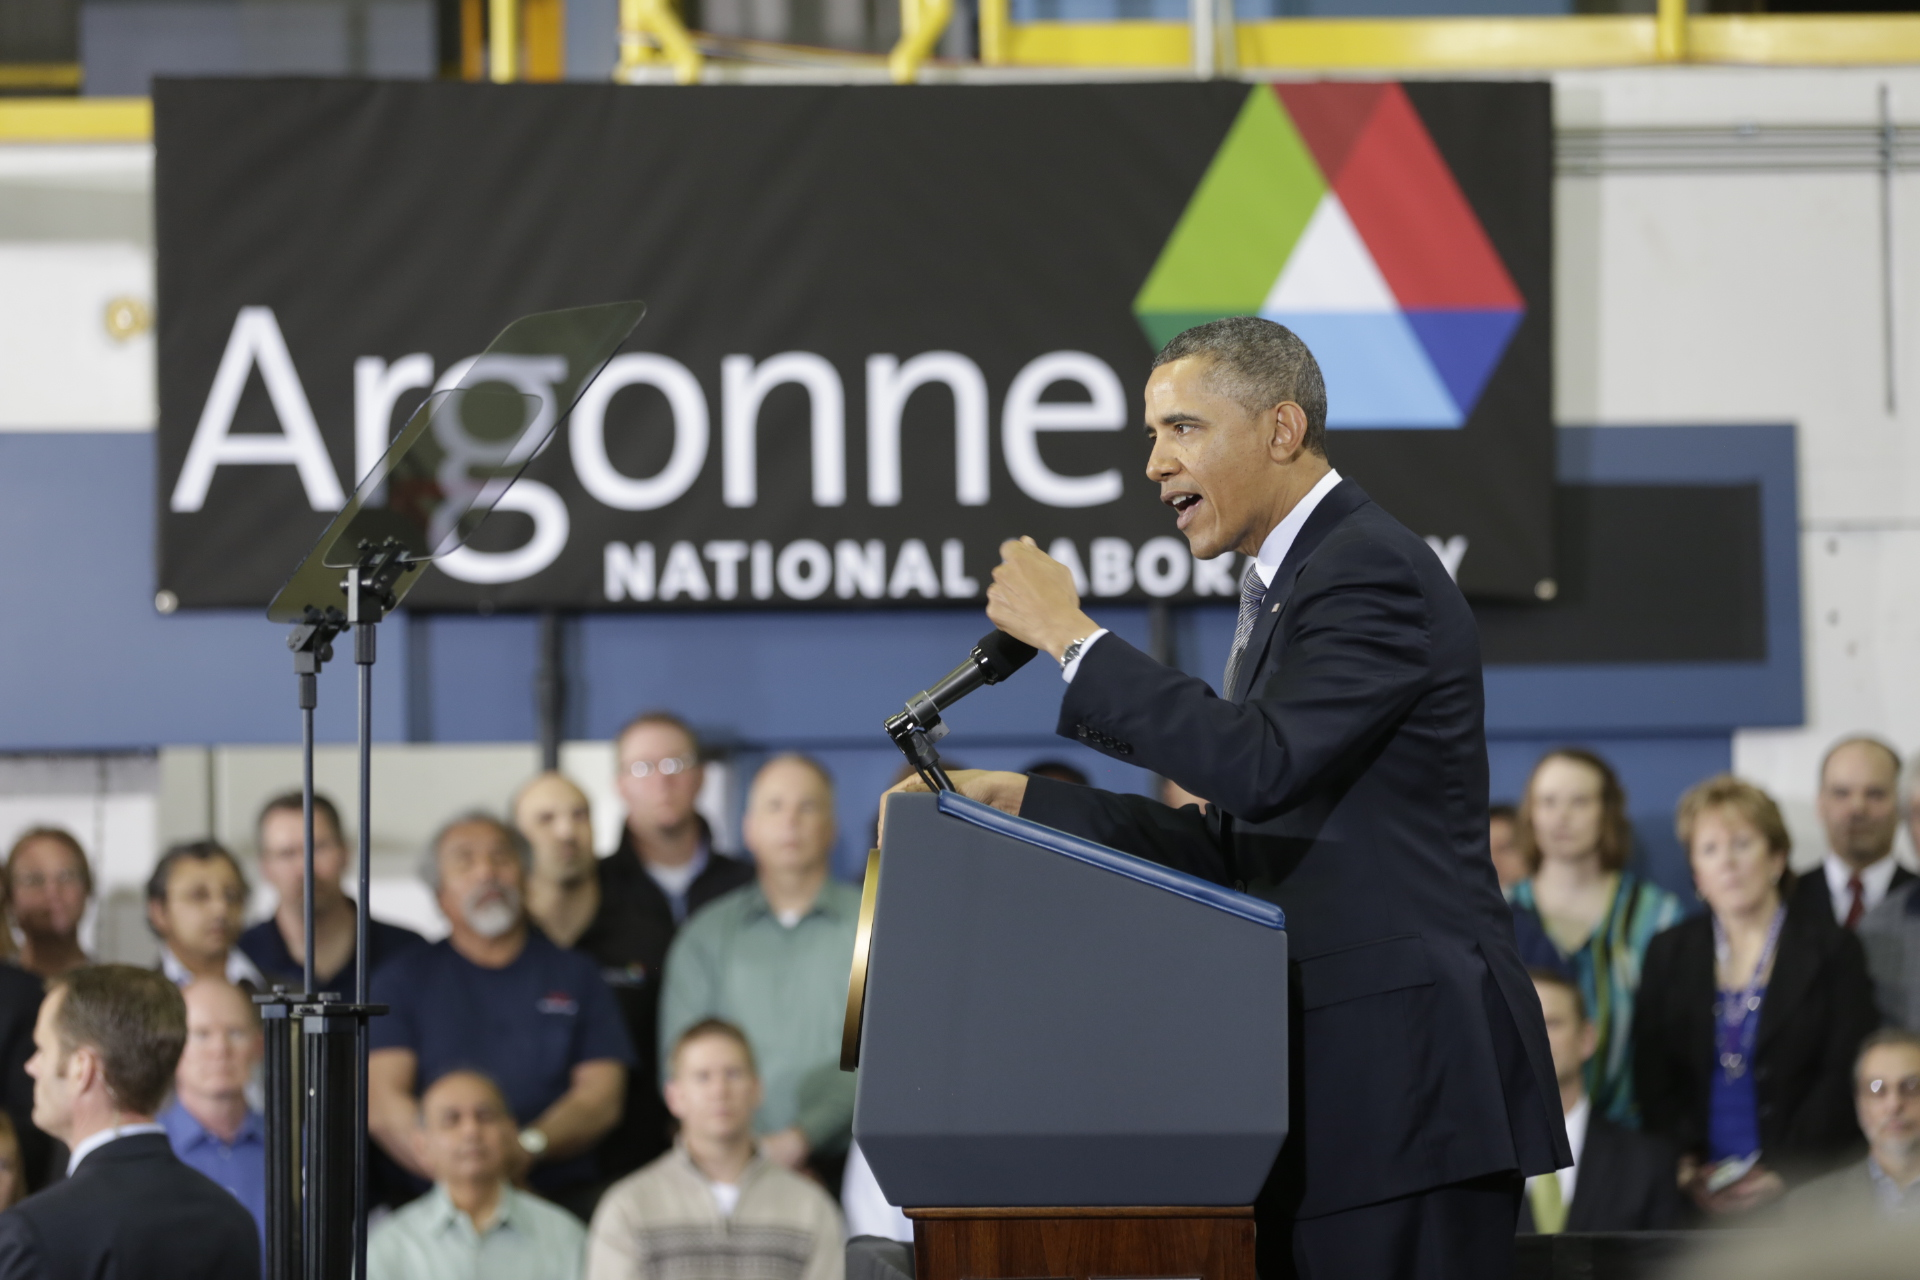 President Barack Obama delivers remarks at Argonne National Laboratory, March 15, 2013.